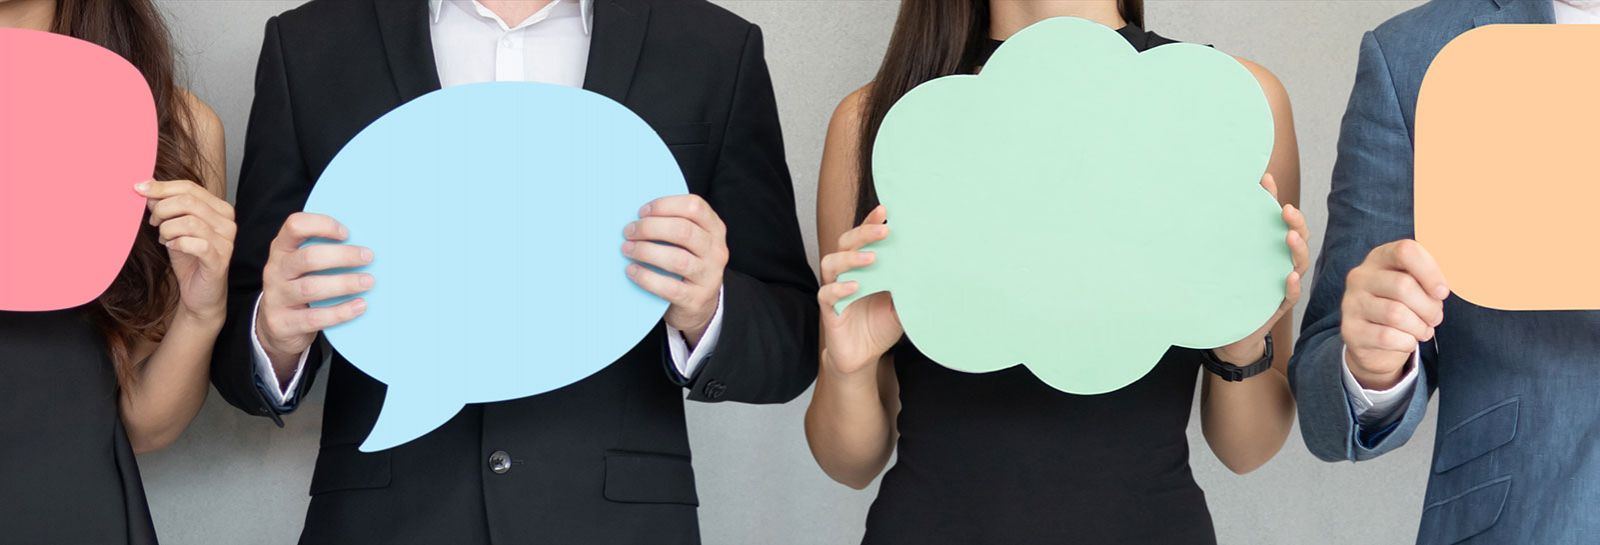 People holding cardboard speech bubbles banner image